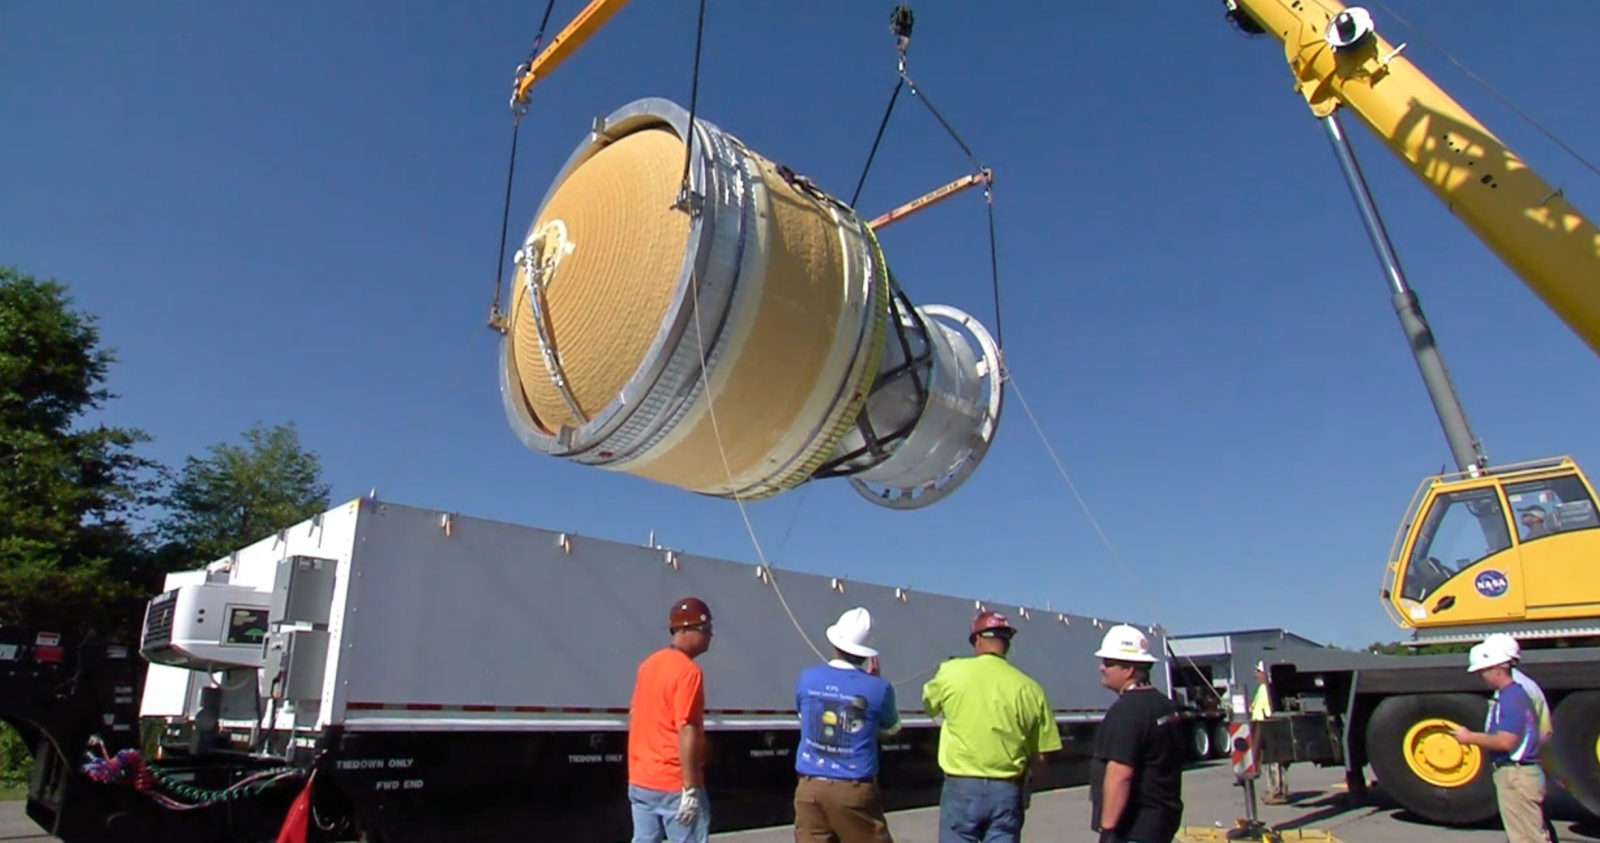 The ICPS STA is lifted from the shipping container. Credit: NASA